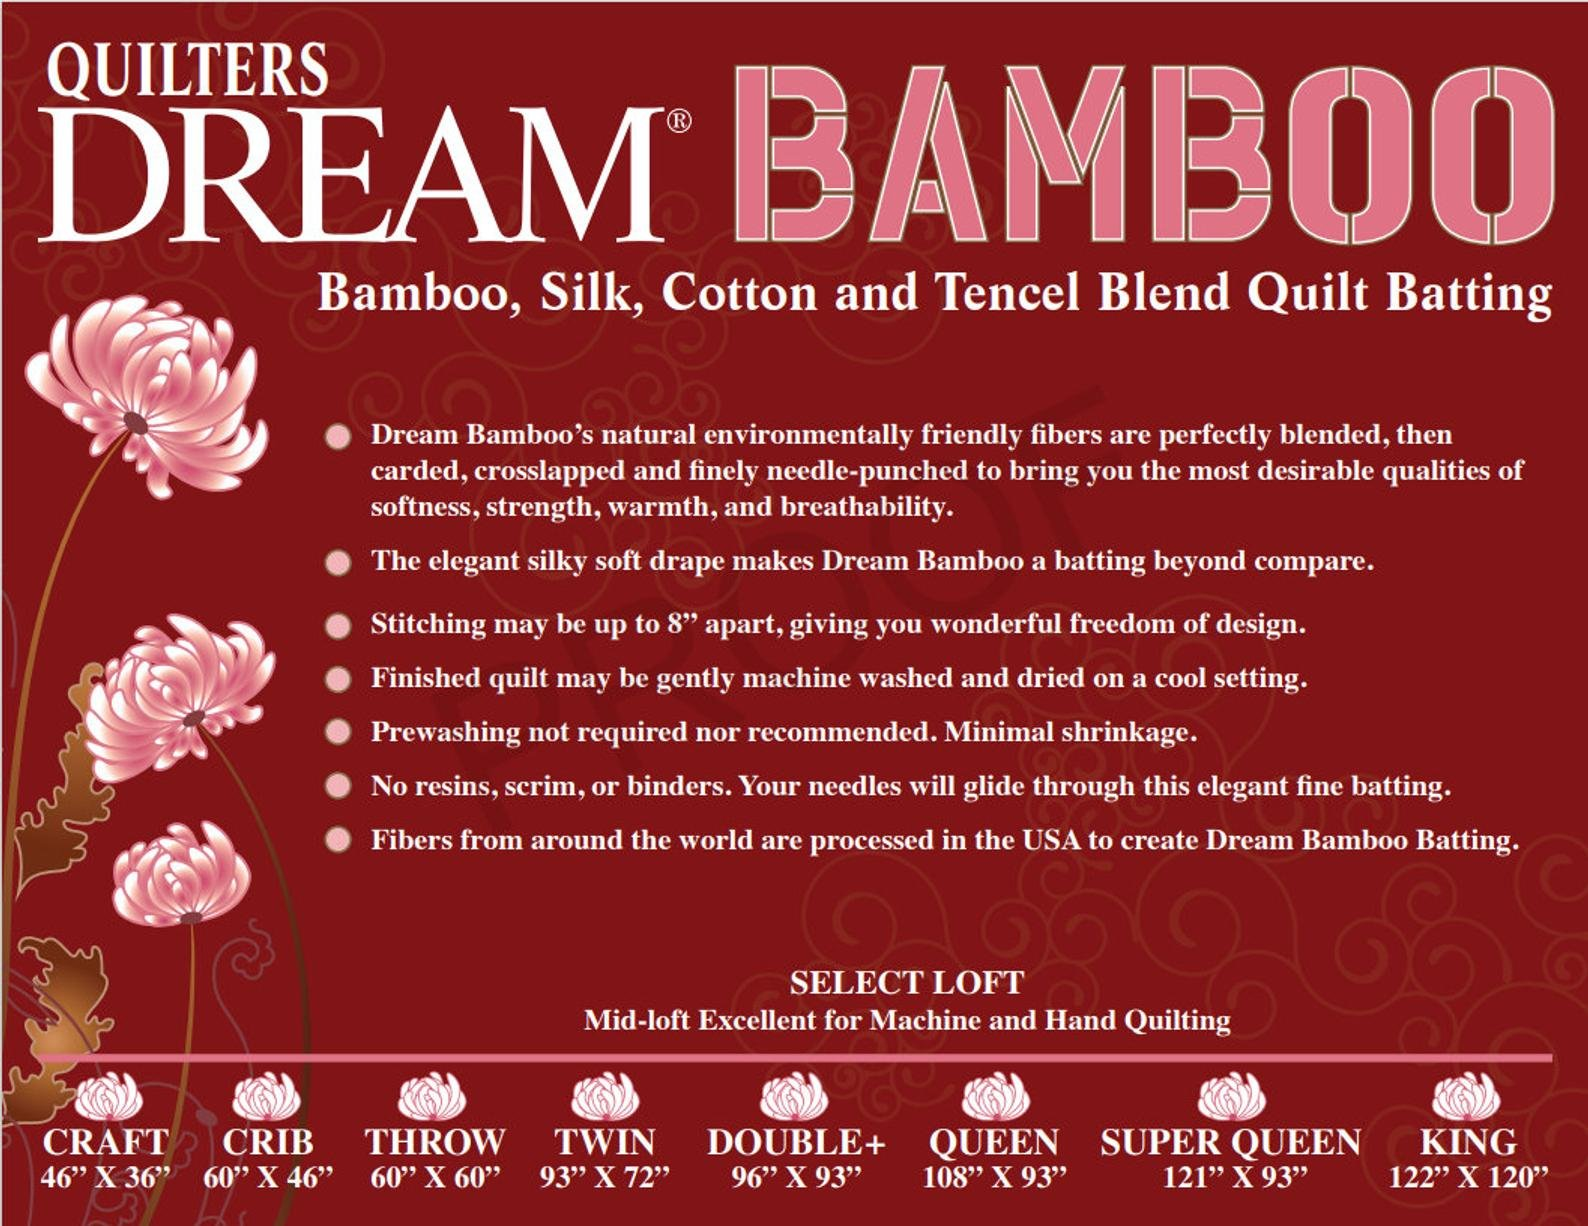 Dream Bamboo Batting/Twin (93 x 72) (Quilters Dream)